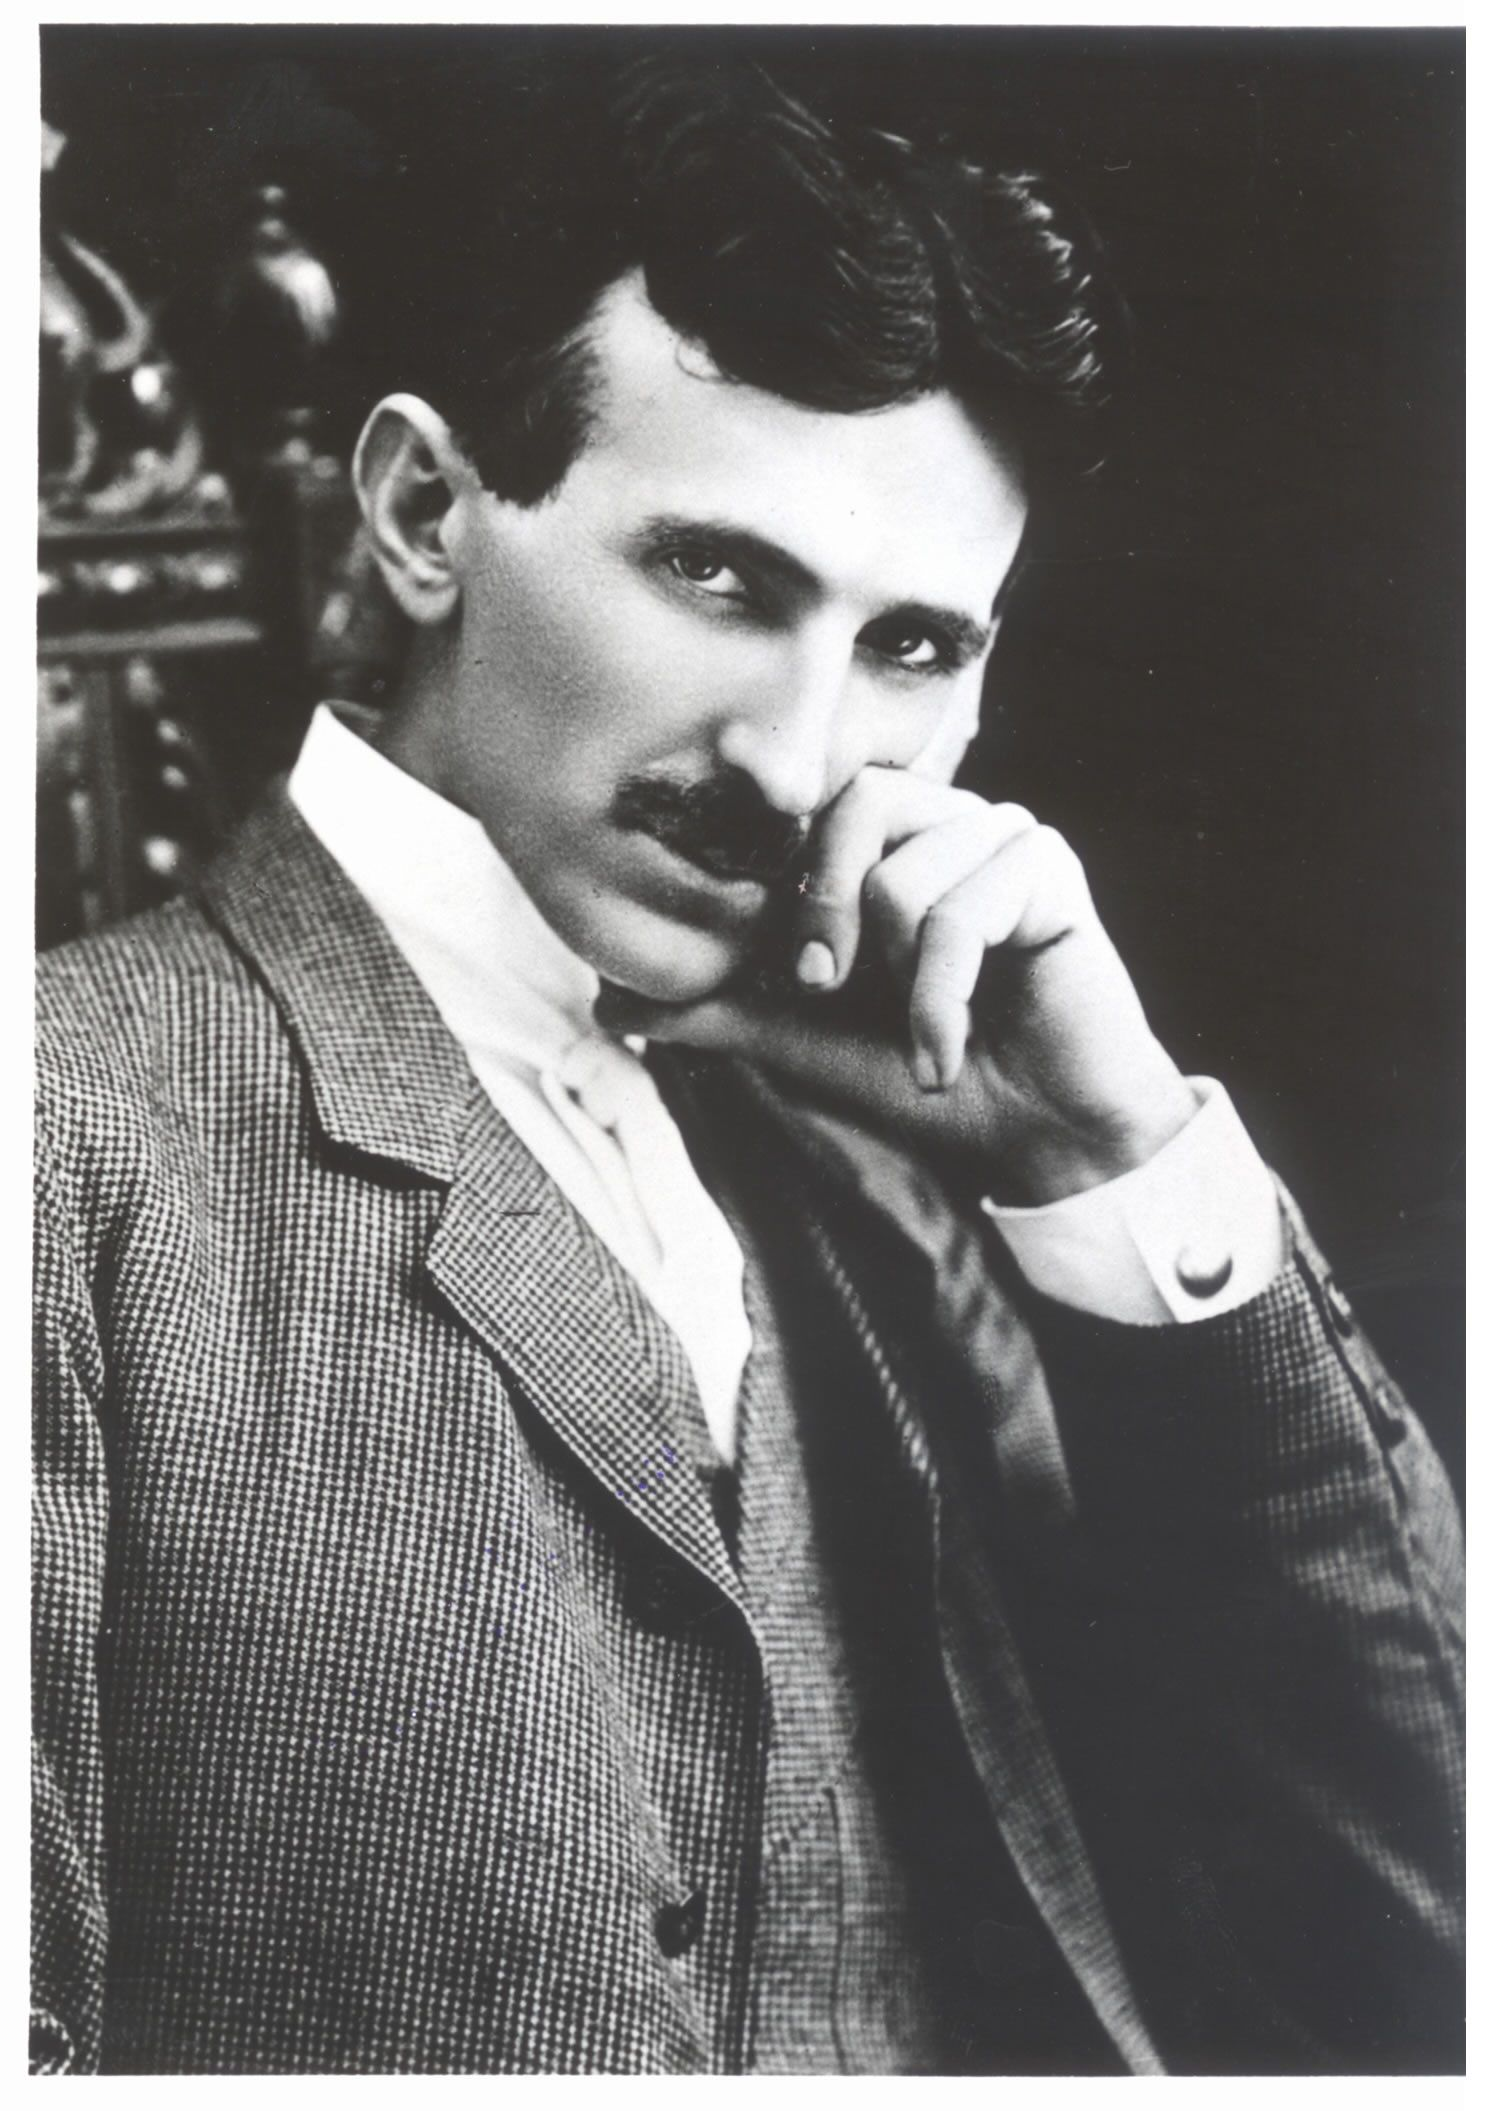 3f833ace5 Nikola Tesla was a Serbian-American inventor, physicist, mechanical  engineer, electrical engineer, and futurist. Wikipedia Born: July 10, 1856,  ...